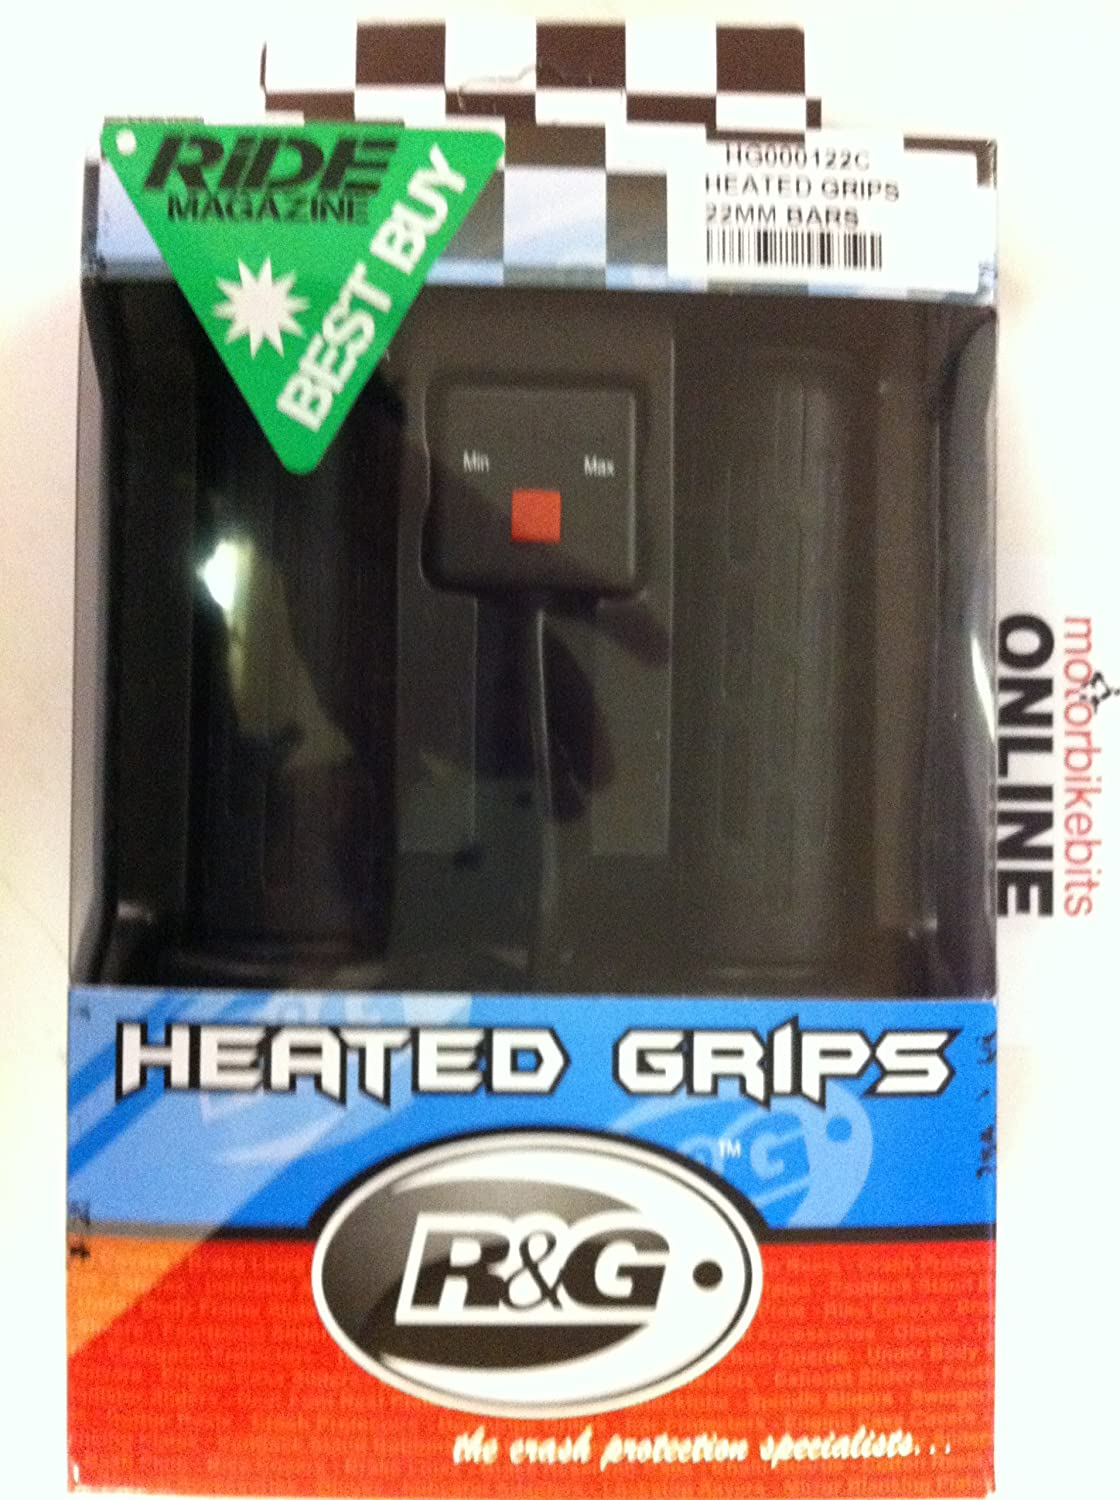 Heated motorcycle gloves vs heated grips - Heated Motorcycle Gloves Vs Heated Grips 45